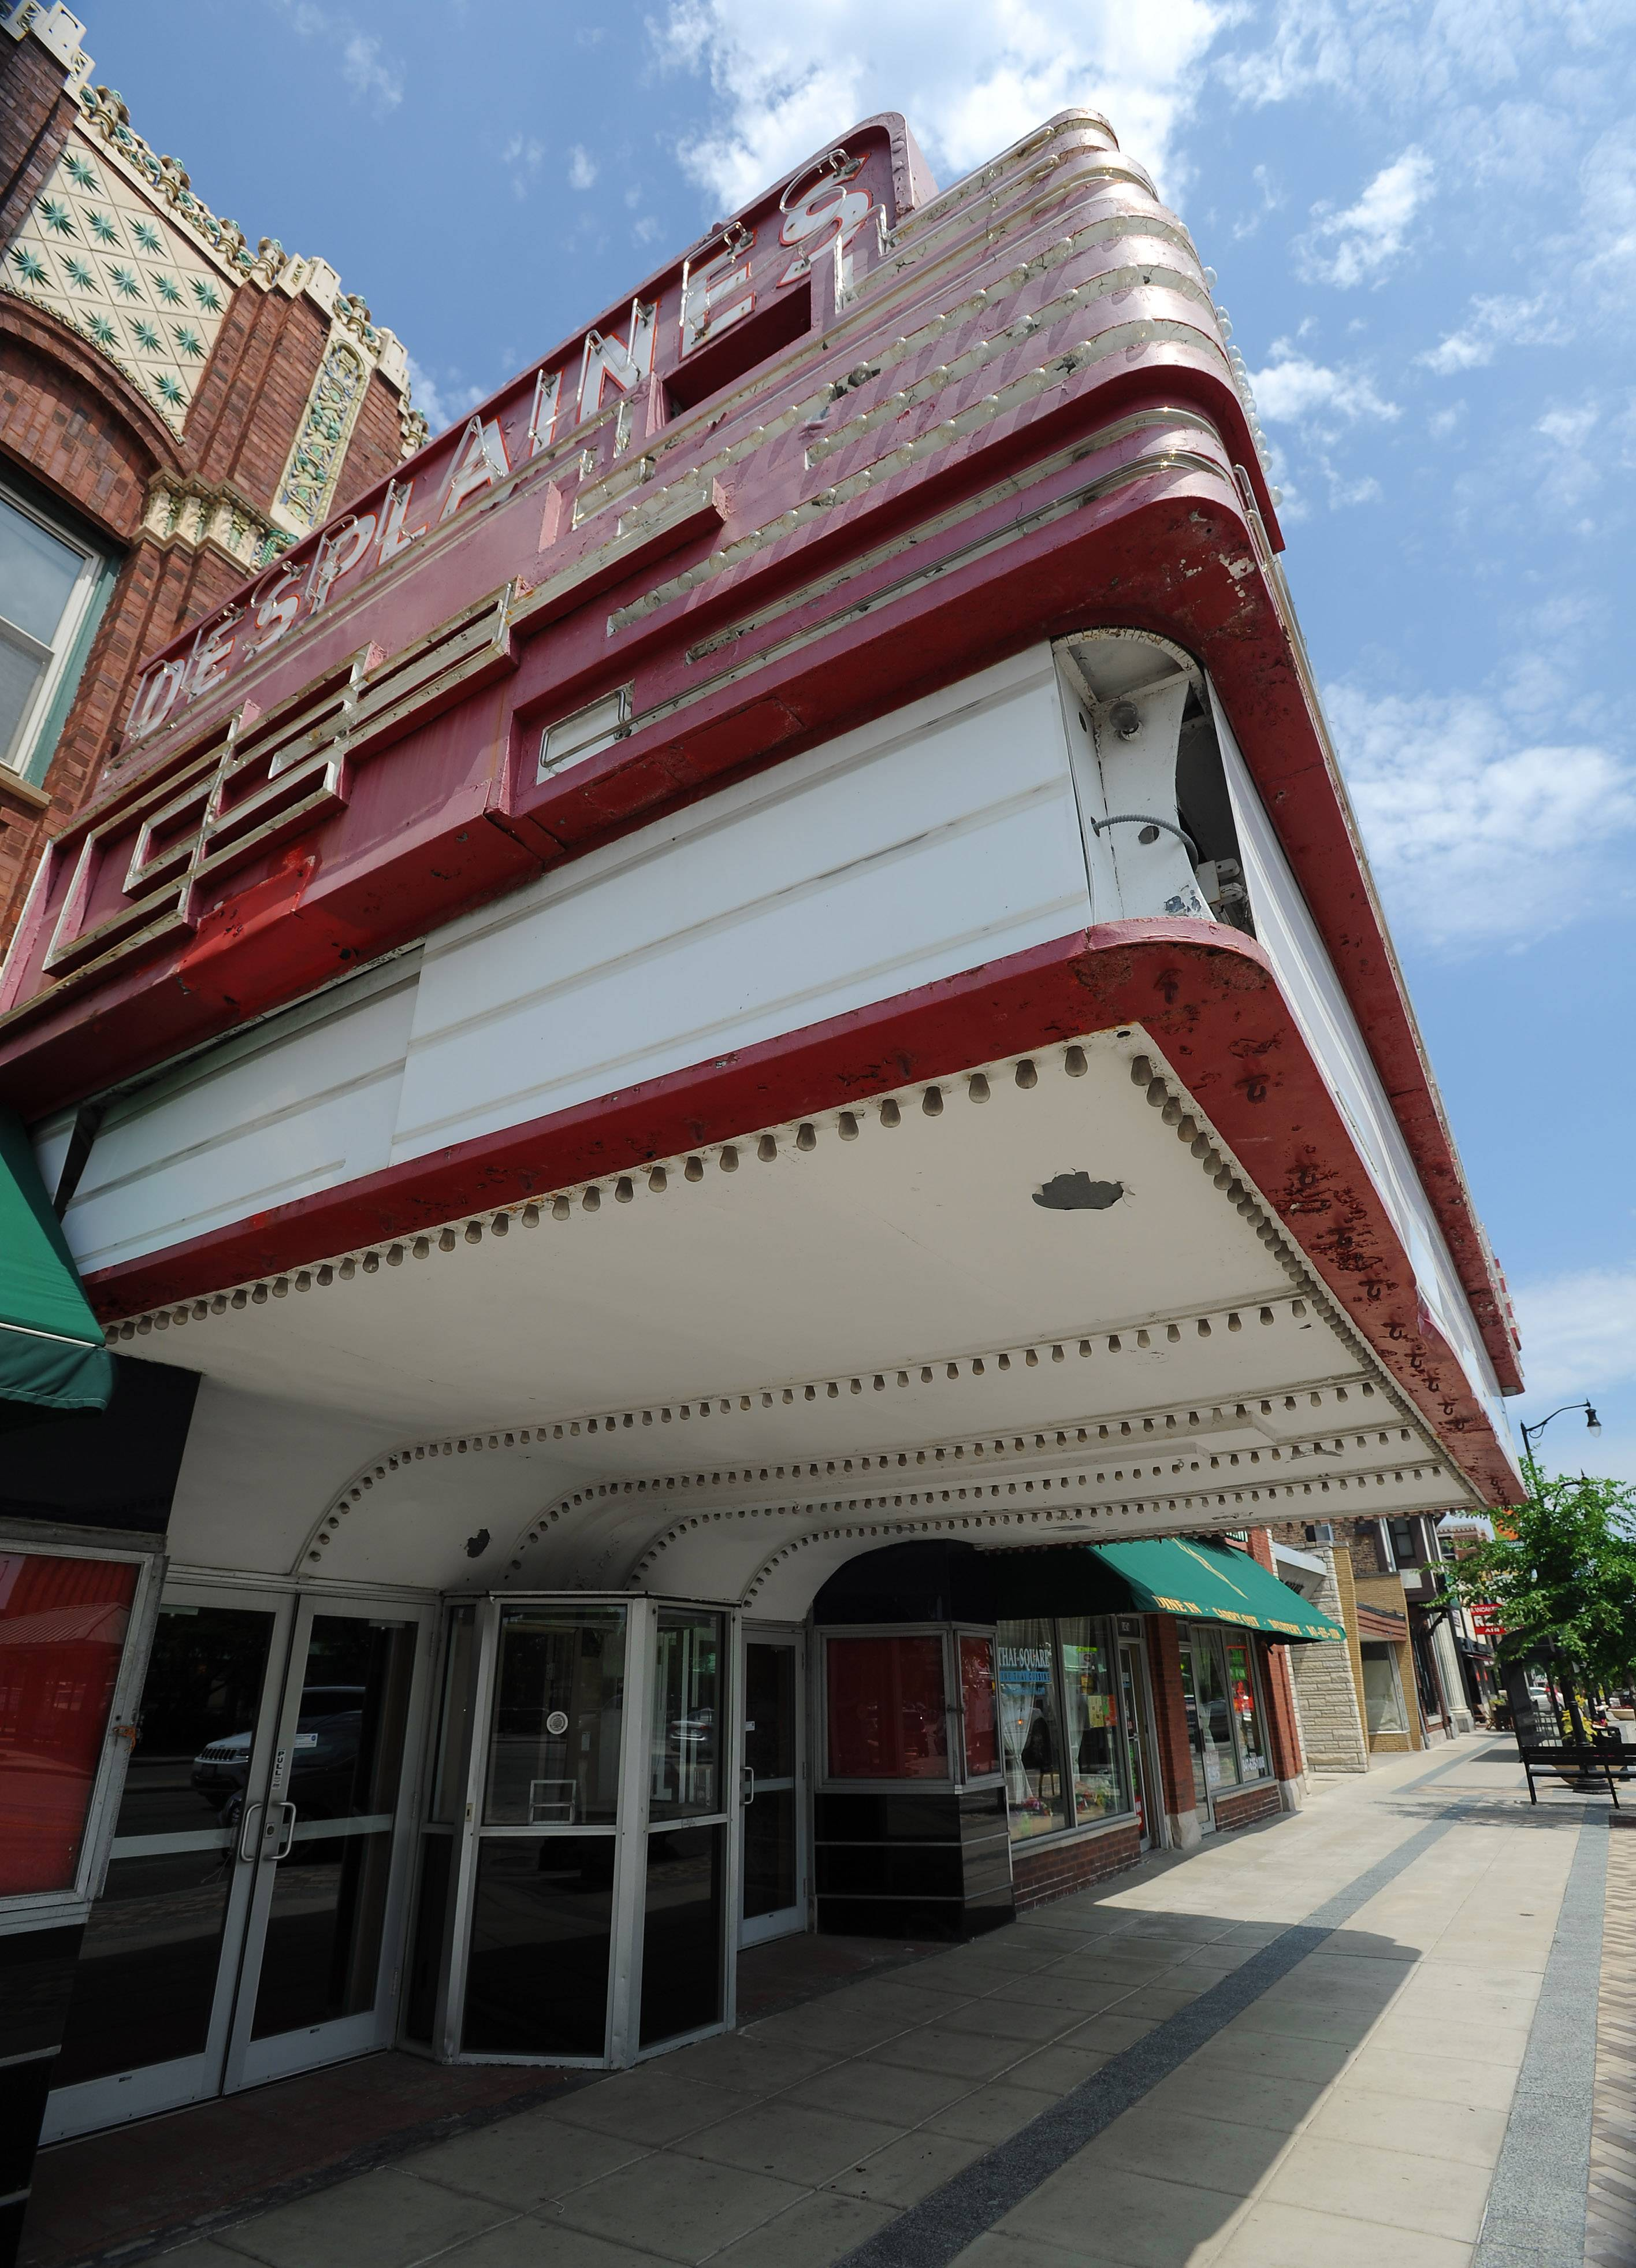 Des Plaines aldermen are expected to give the city permission Monday to make a final offer for the Des Plaines Theatre at 1476 Miner St.